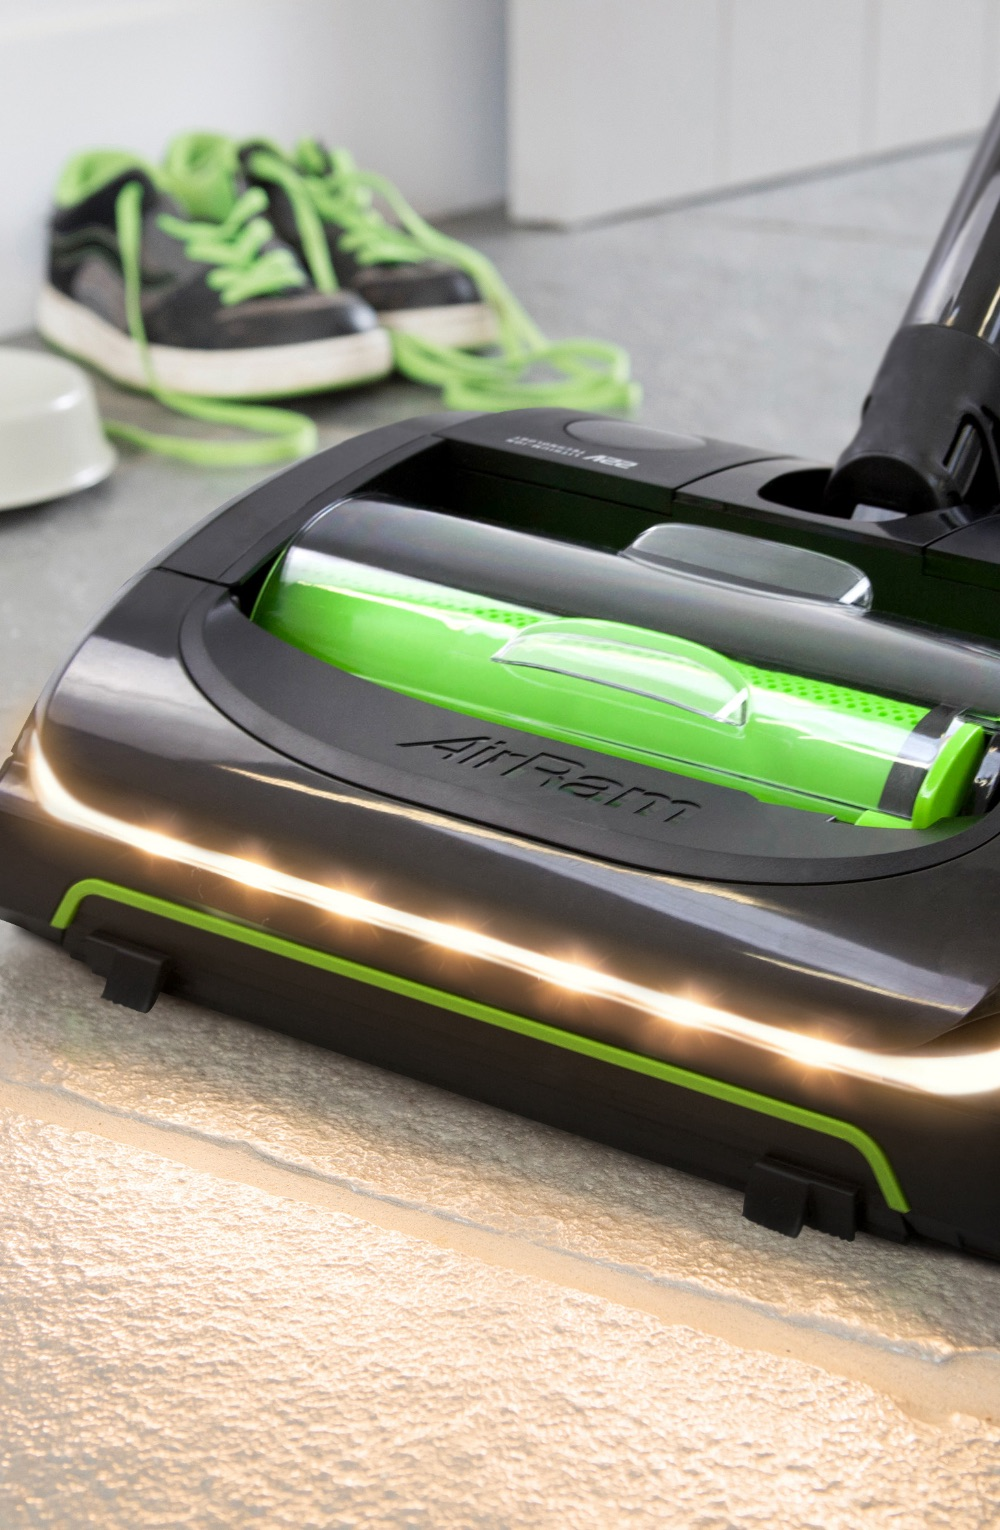 AirRam K9 cordless vacuum cleaner on carpet